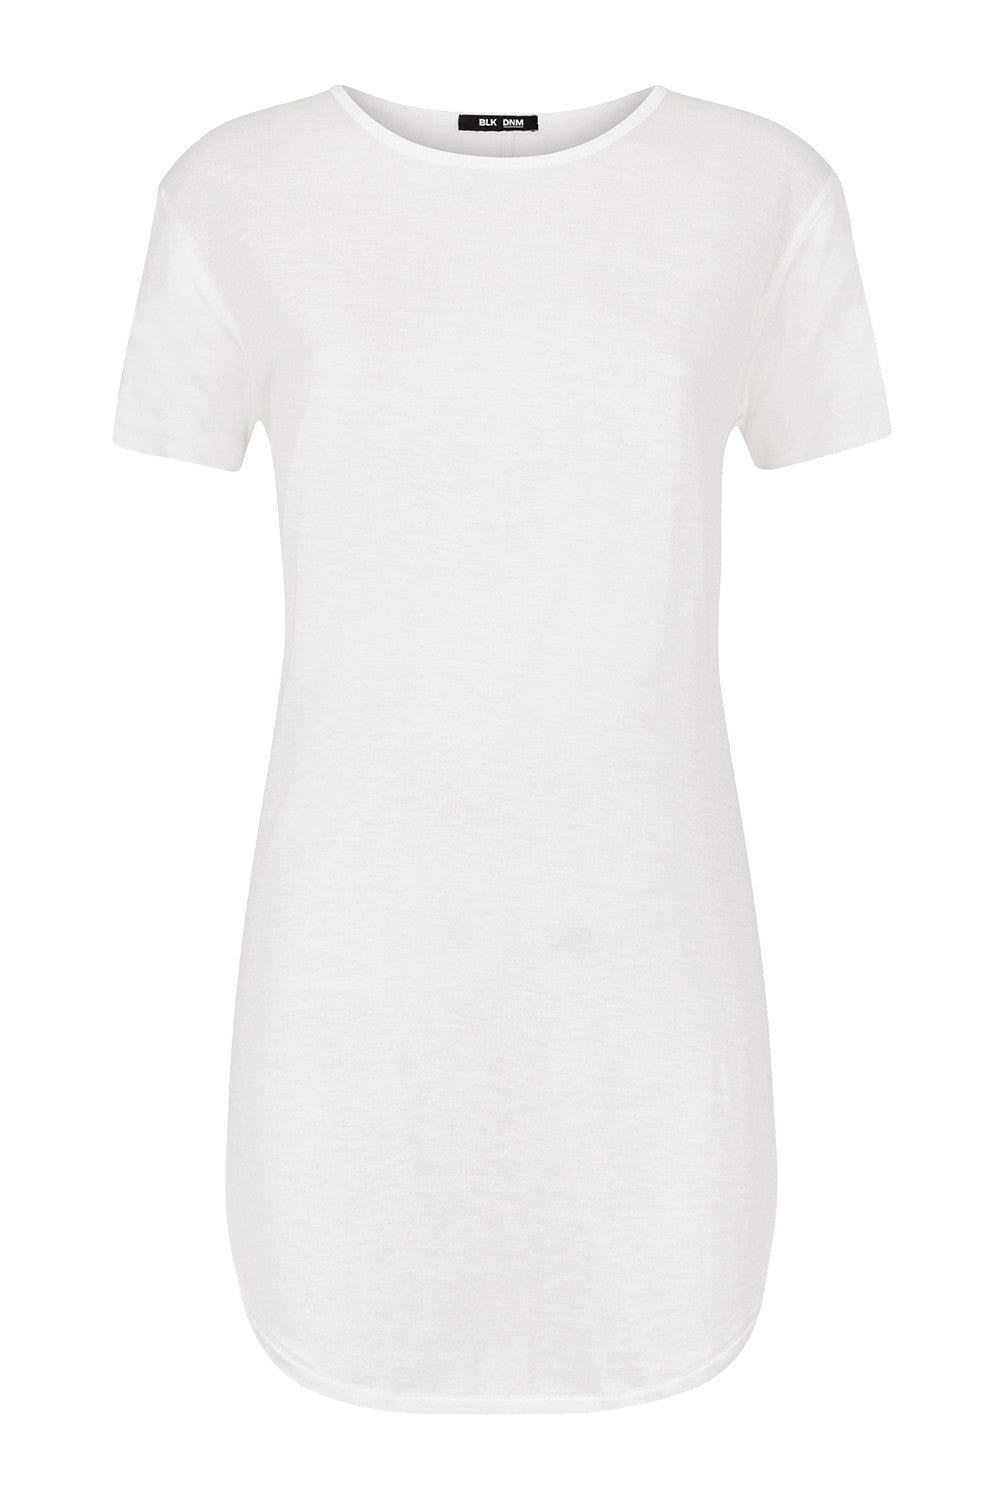 WOMENS T SHIRT 30 WHITE